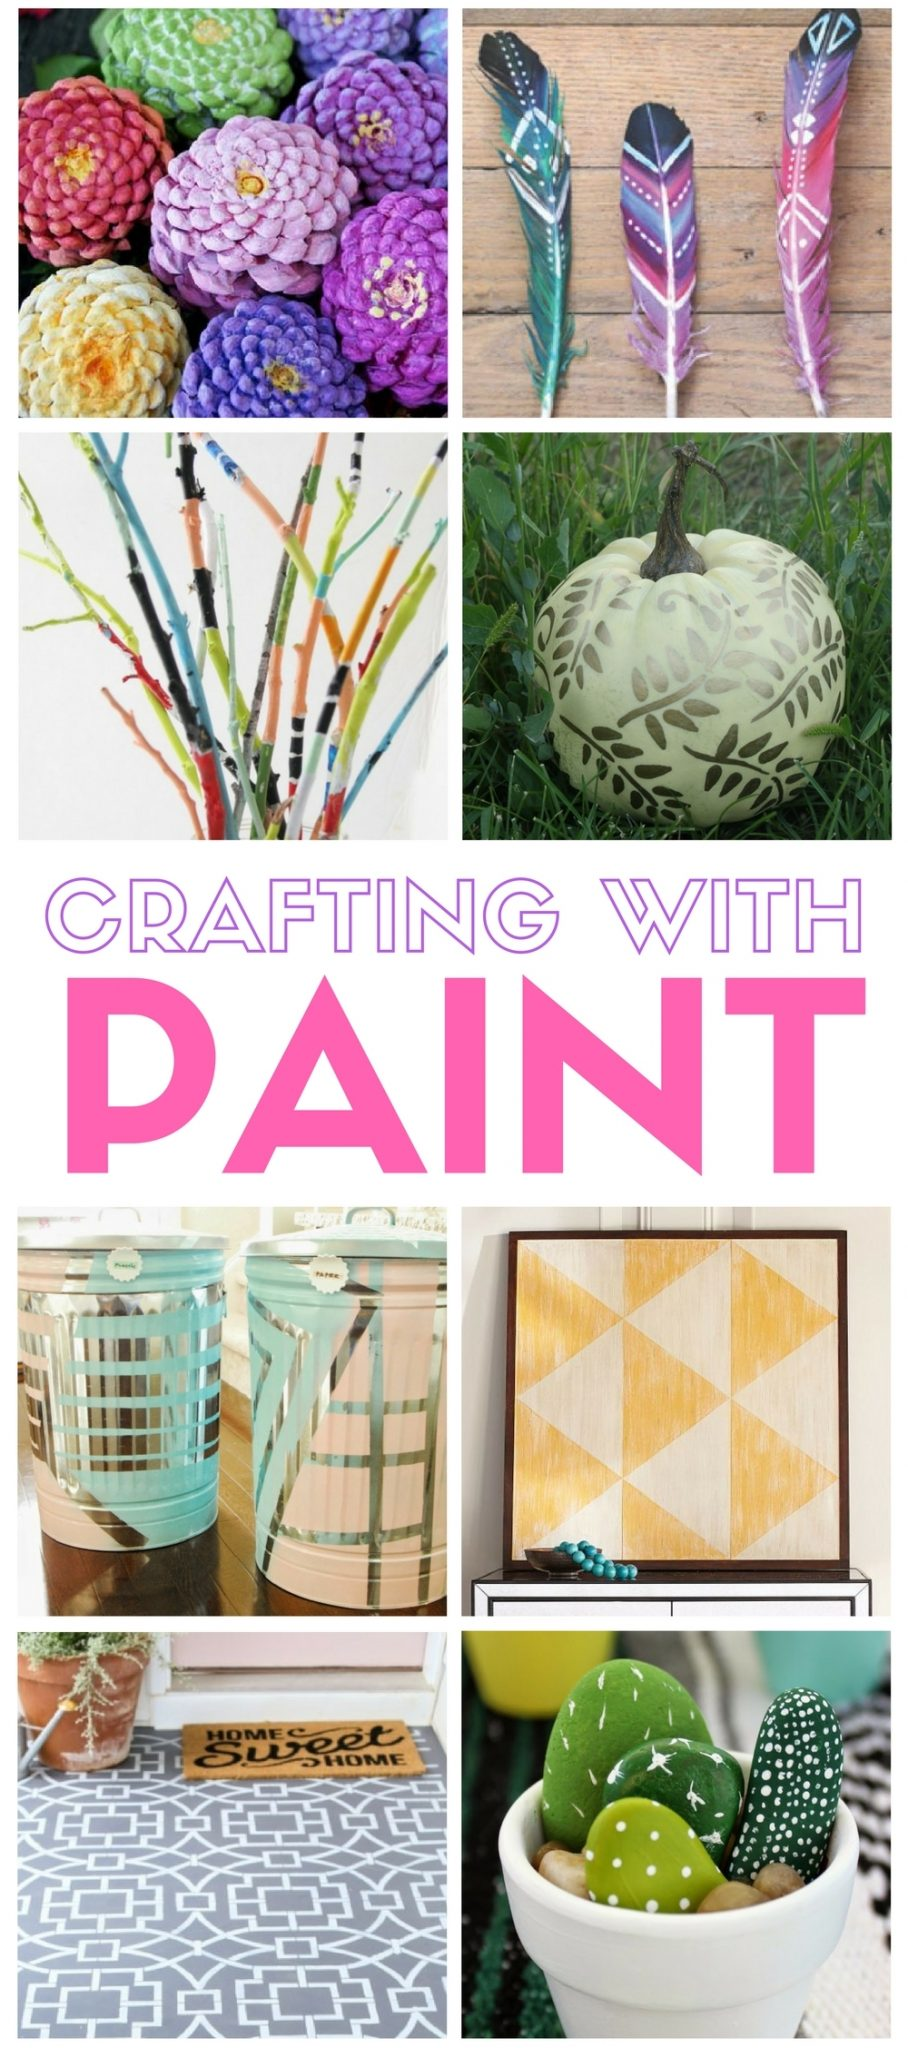 Crafting with paint is a collection of fun and simple DIY craft tutorial ideas. Paint is an easy way to add color and style to any craft project.